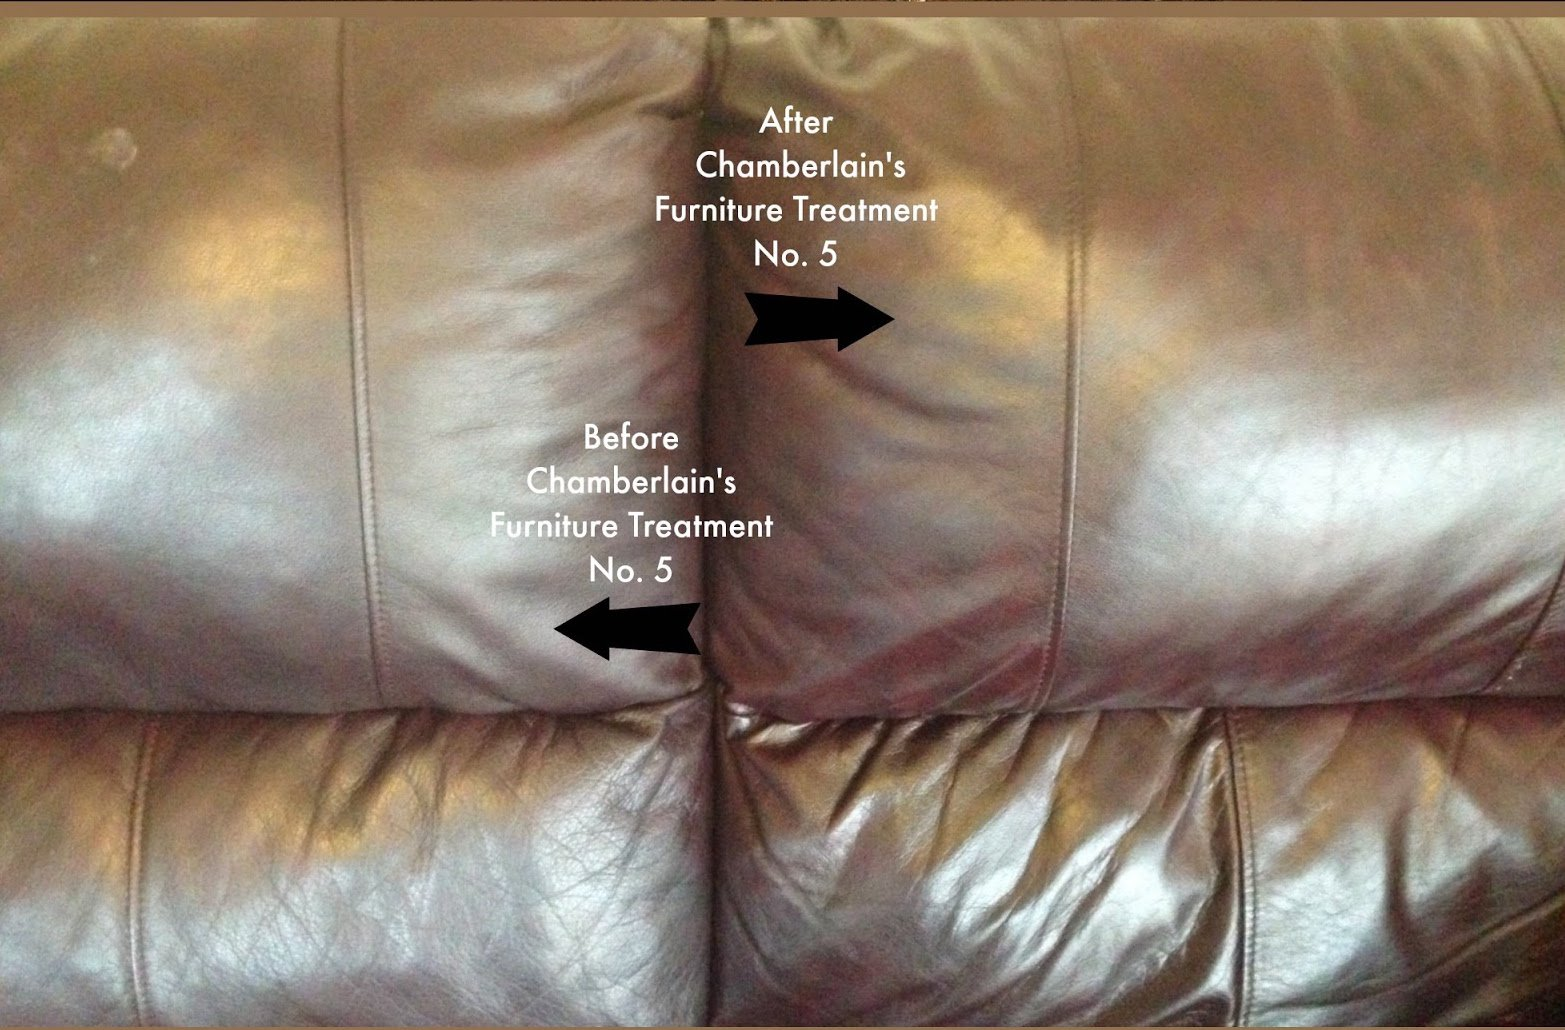 Leather Milk Leather Furniture Conditioner and Cleaner - Furniture Treatment No. 5 - For All Natural, Non-Toxic Leather Care. Made in the USA. 2 Sizes. Includes Premium Applicator Pad! by Chamberlain's Leather Milk (Image #8)